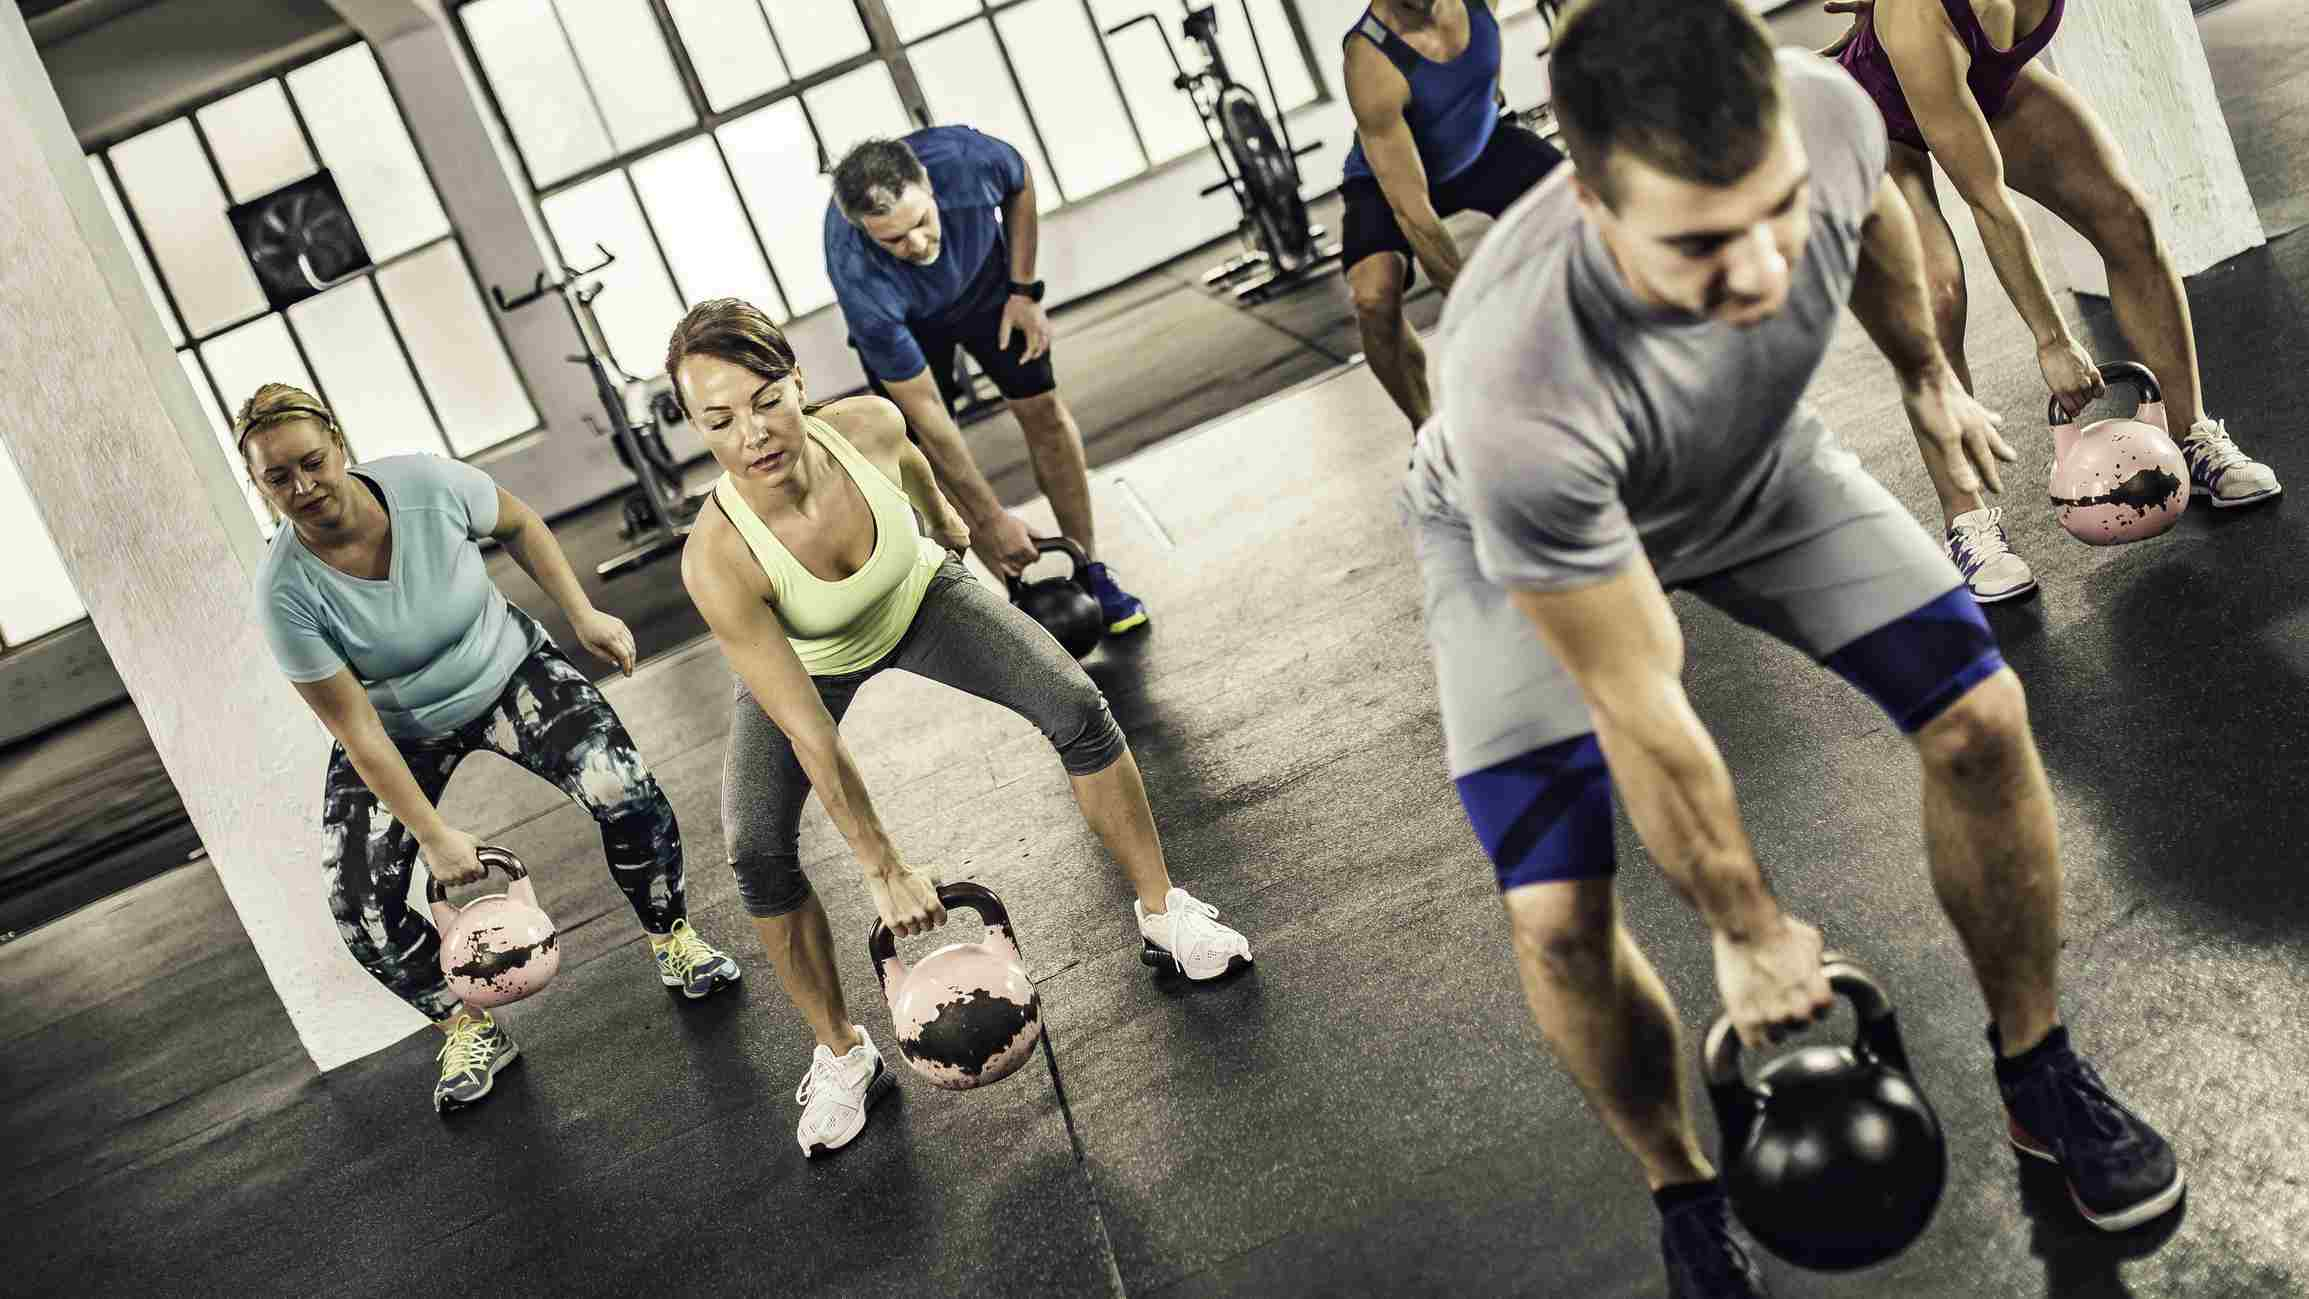 Tips to Make  More People Join My Gym